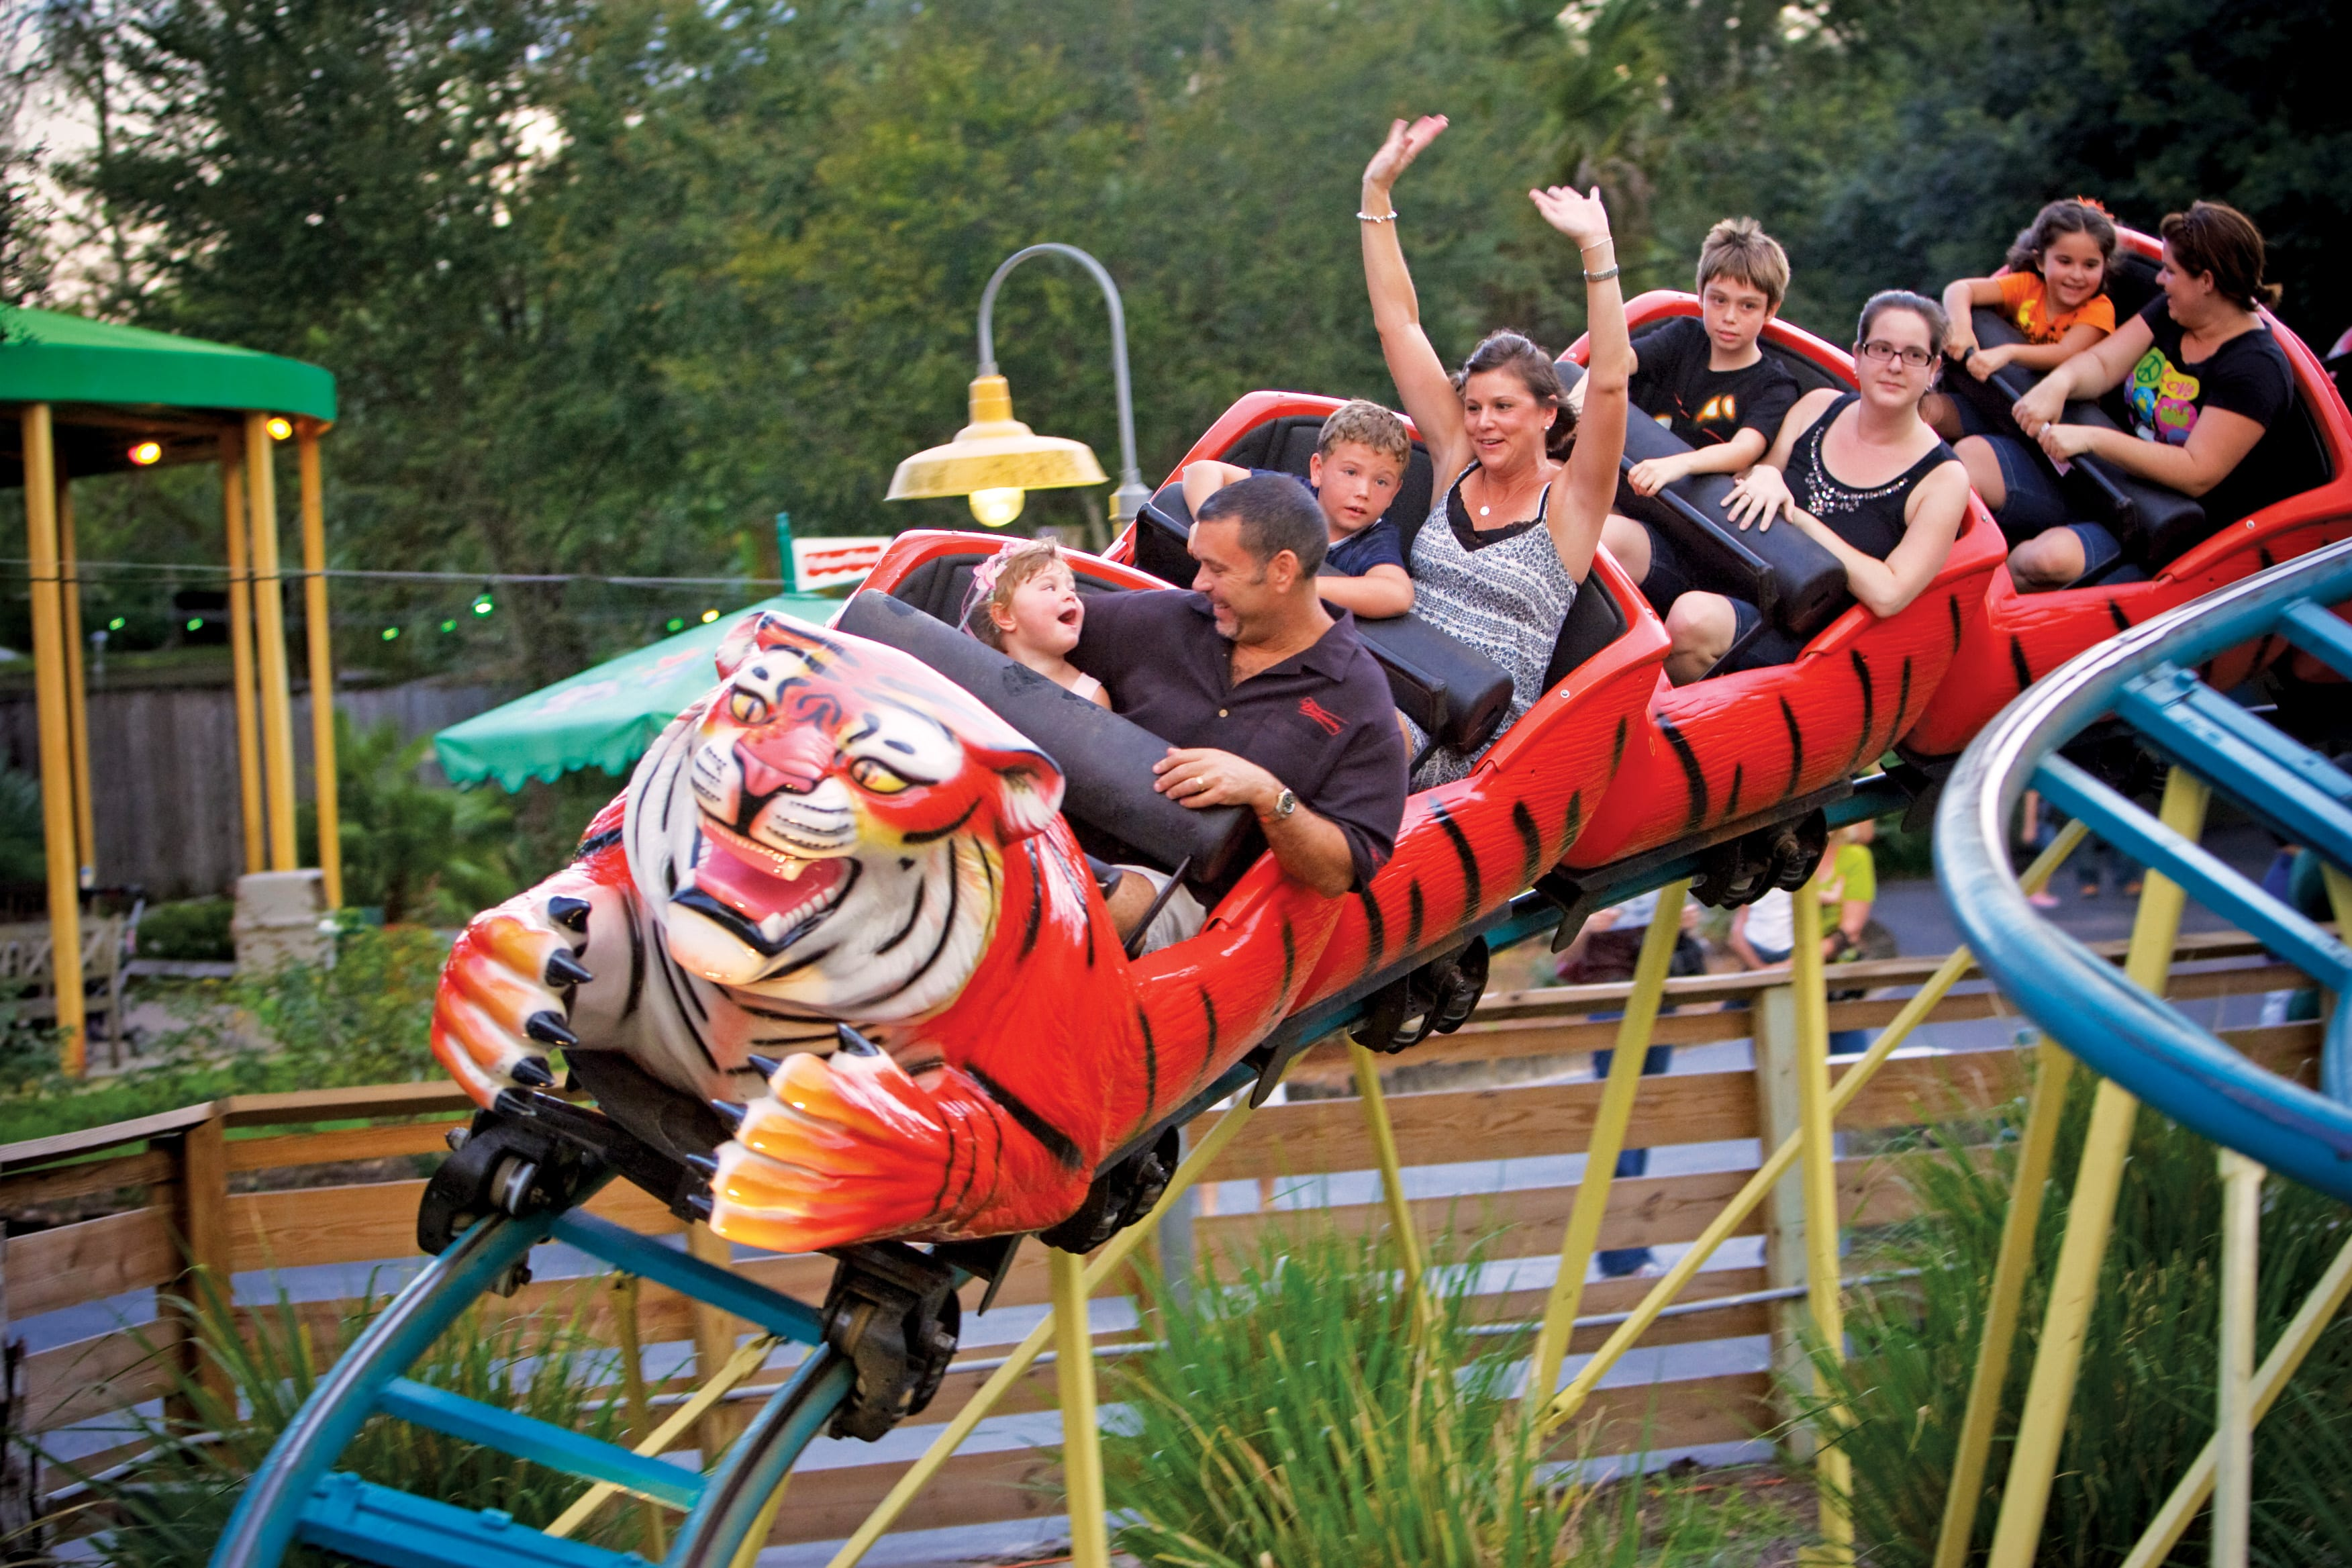 Rides - ZooTampa at Lowry Park